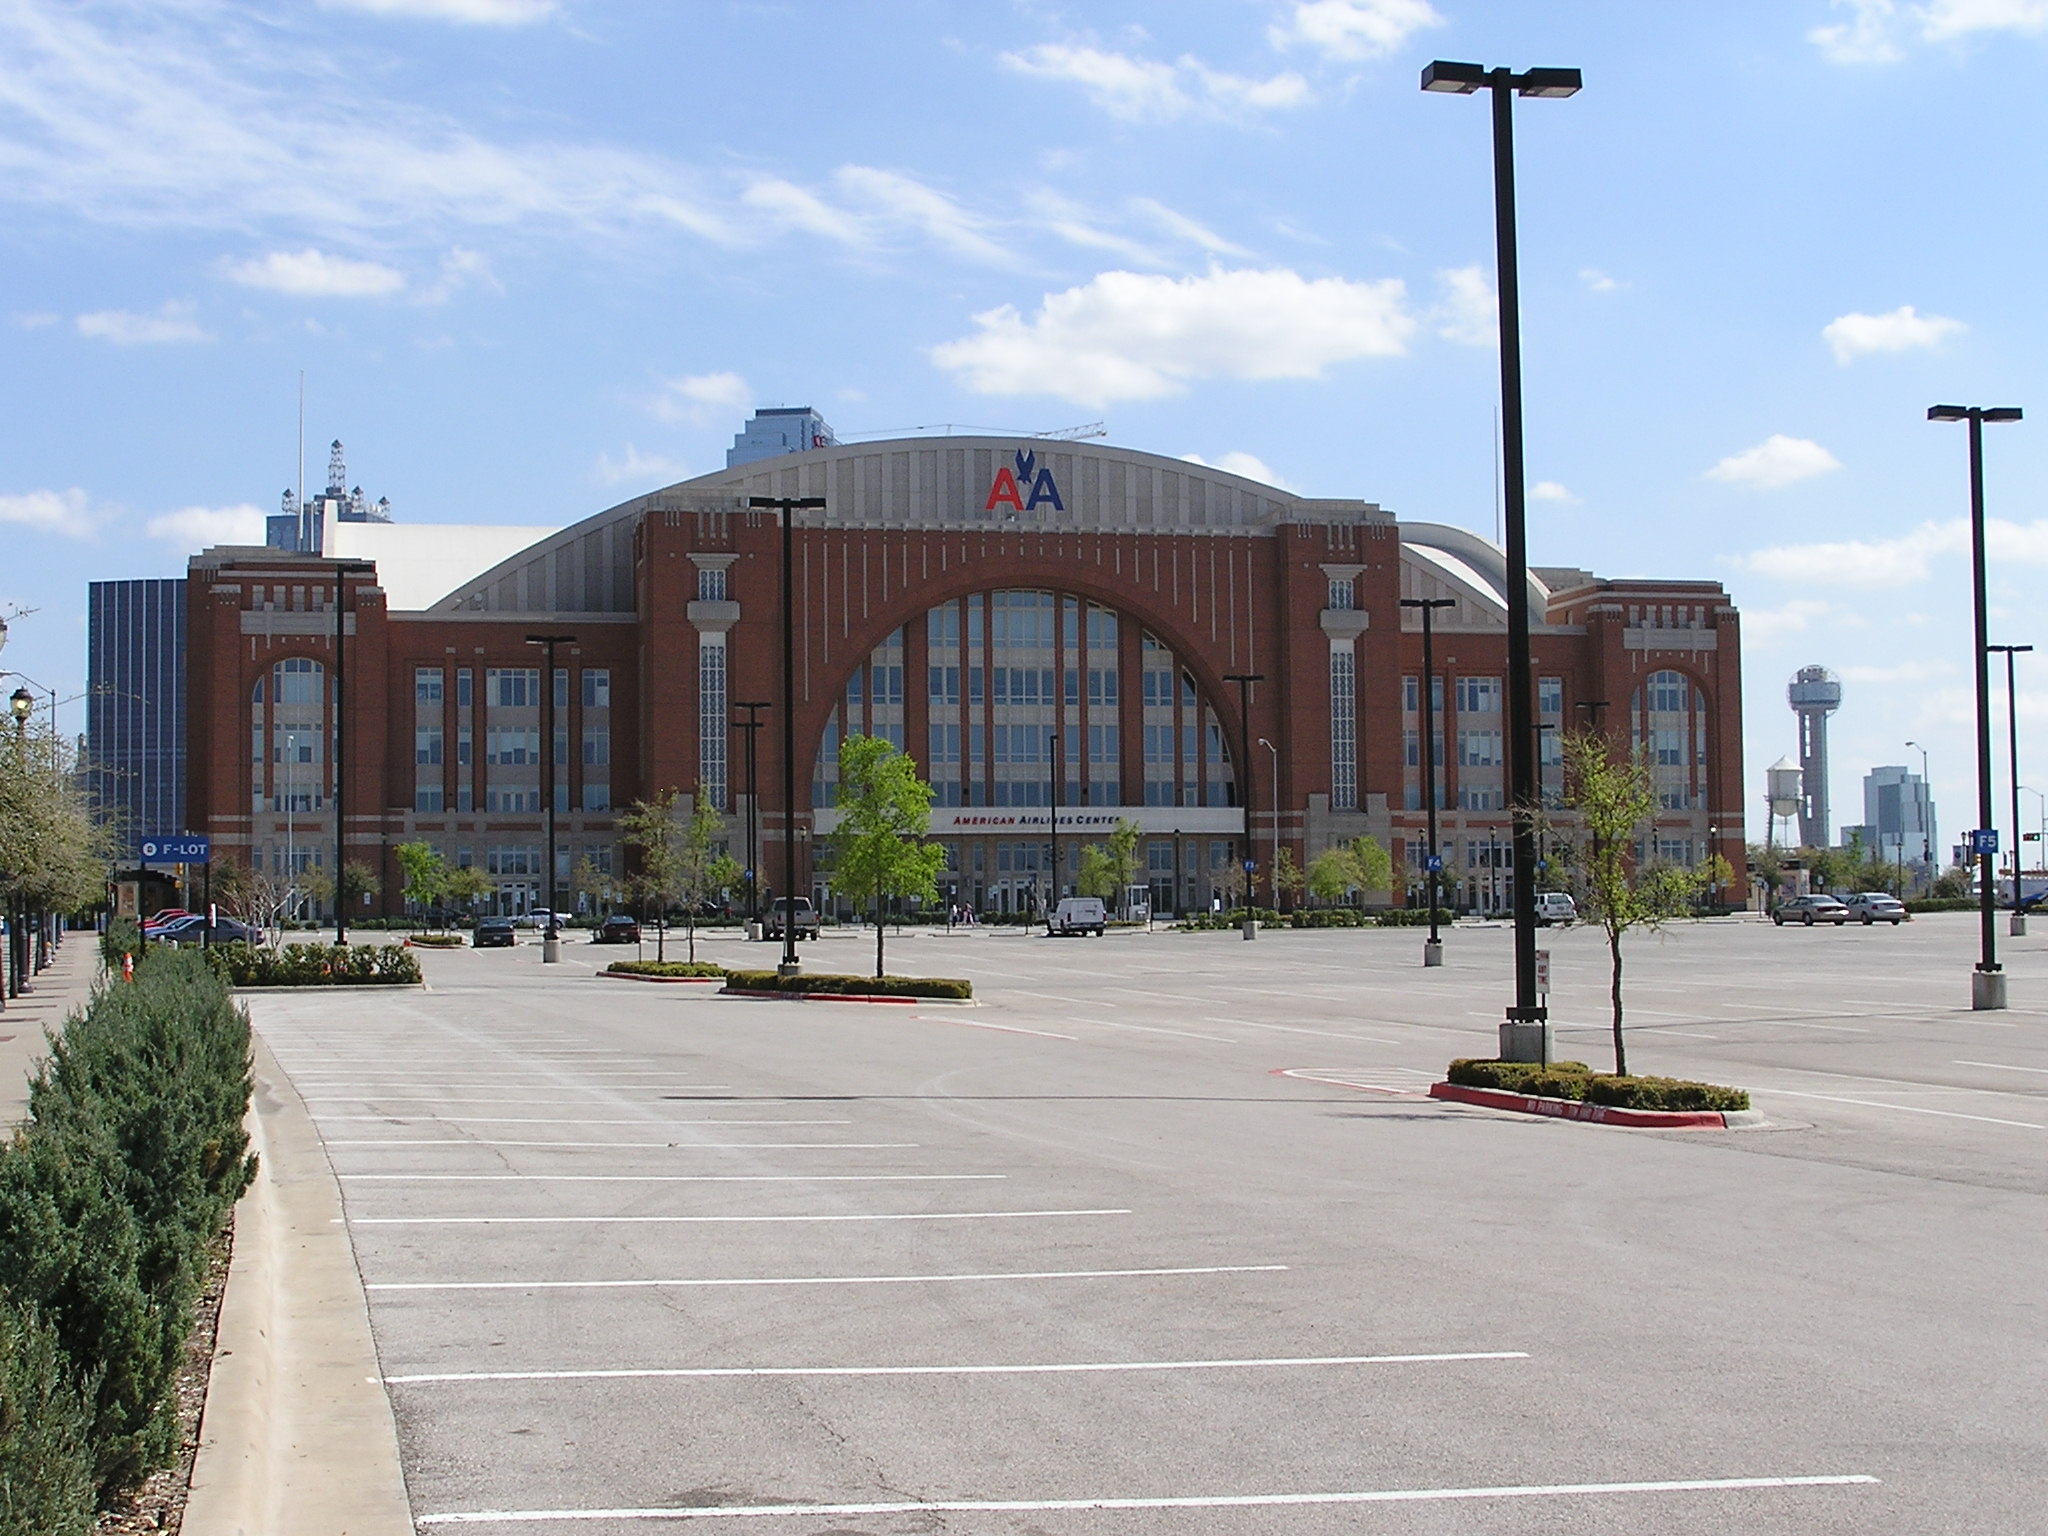 L'American Airlines Center, salle des Dallas Mavericks en NBA